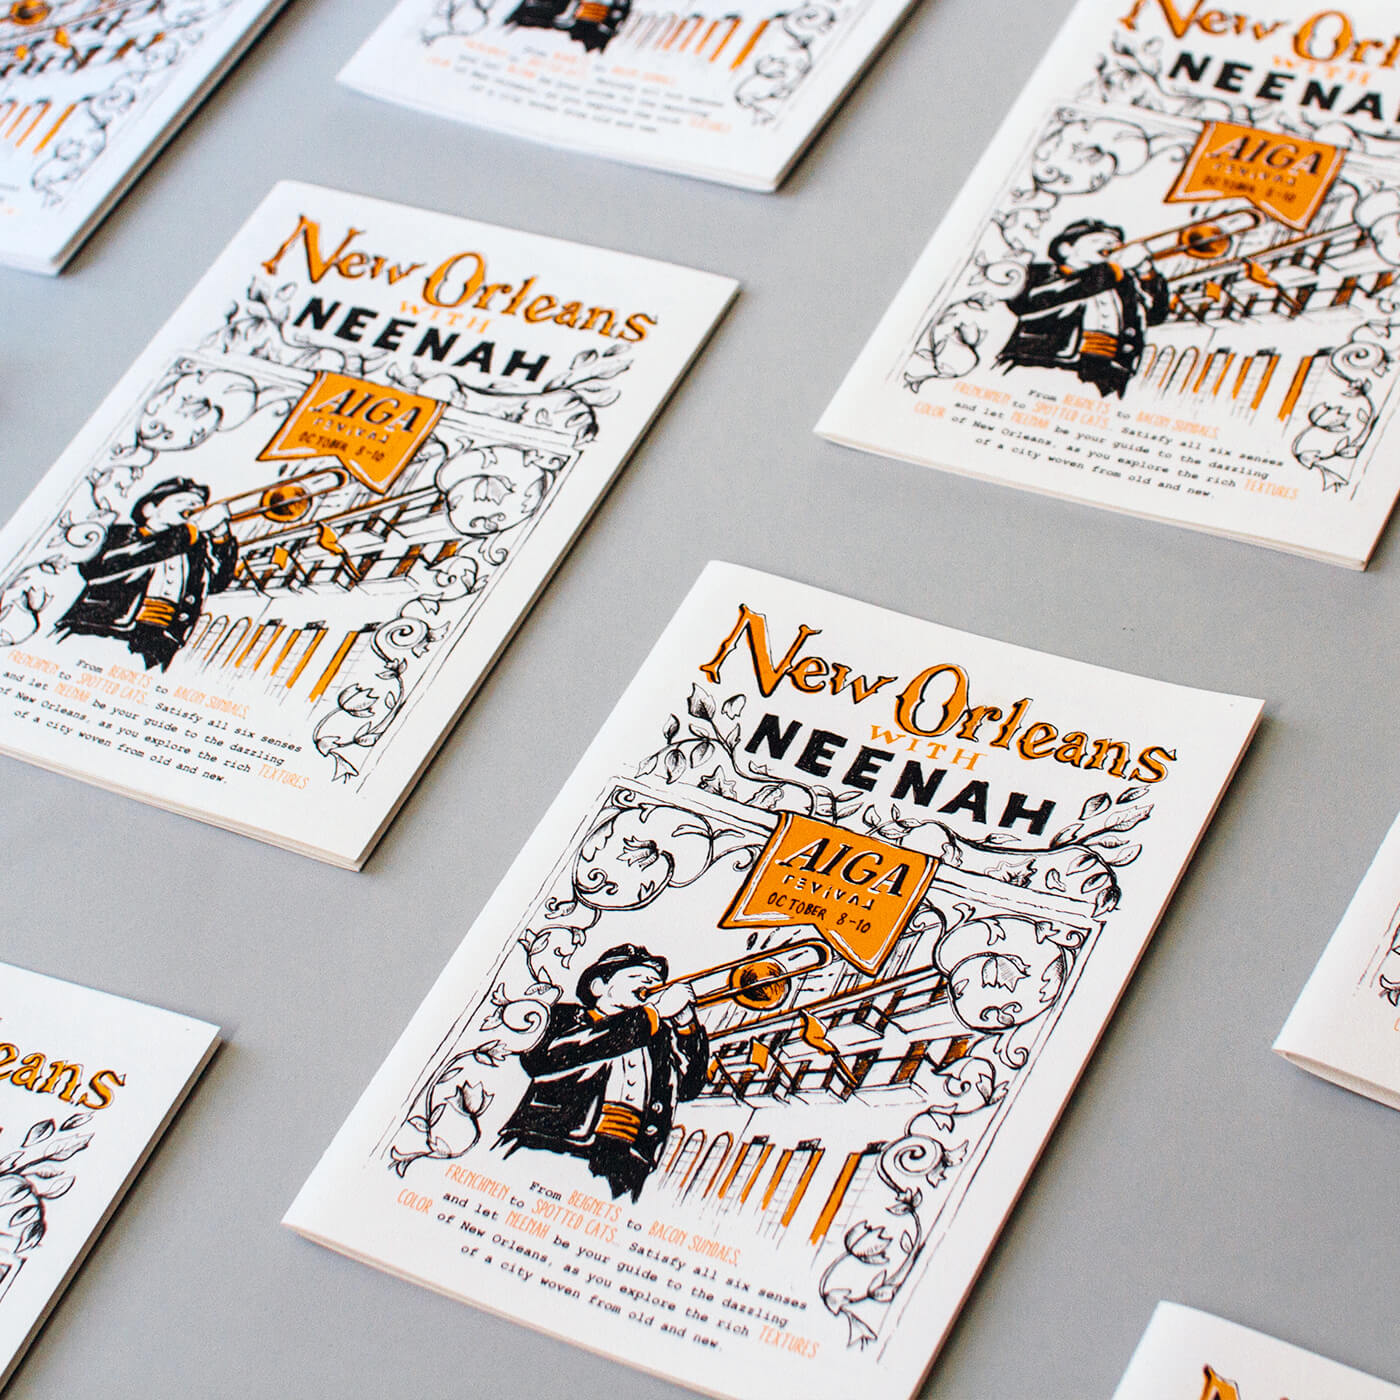 New Orleans with Neenah - An illustrated neighborhood guide of the Big Easy, with maps to introduce you to destinations, restaurants, music and more from the French Quarter to Frenchmen Street and beyond.View Project →